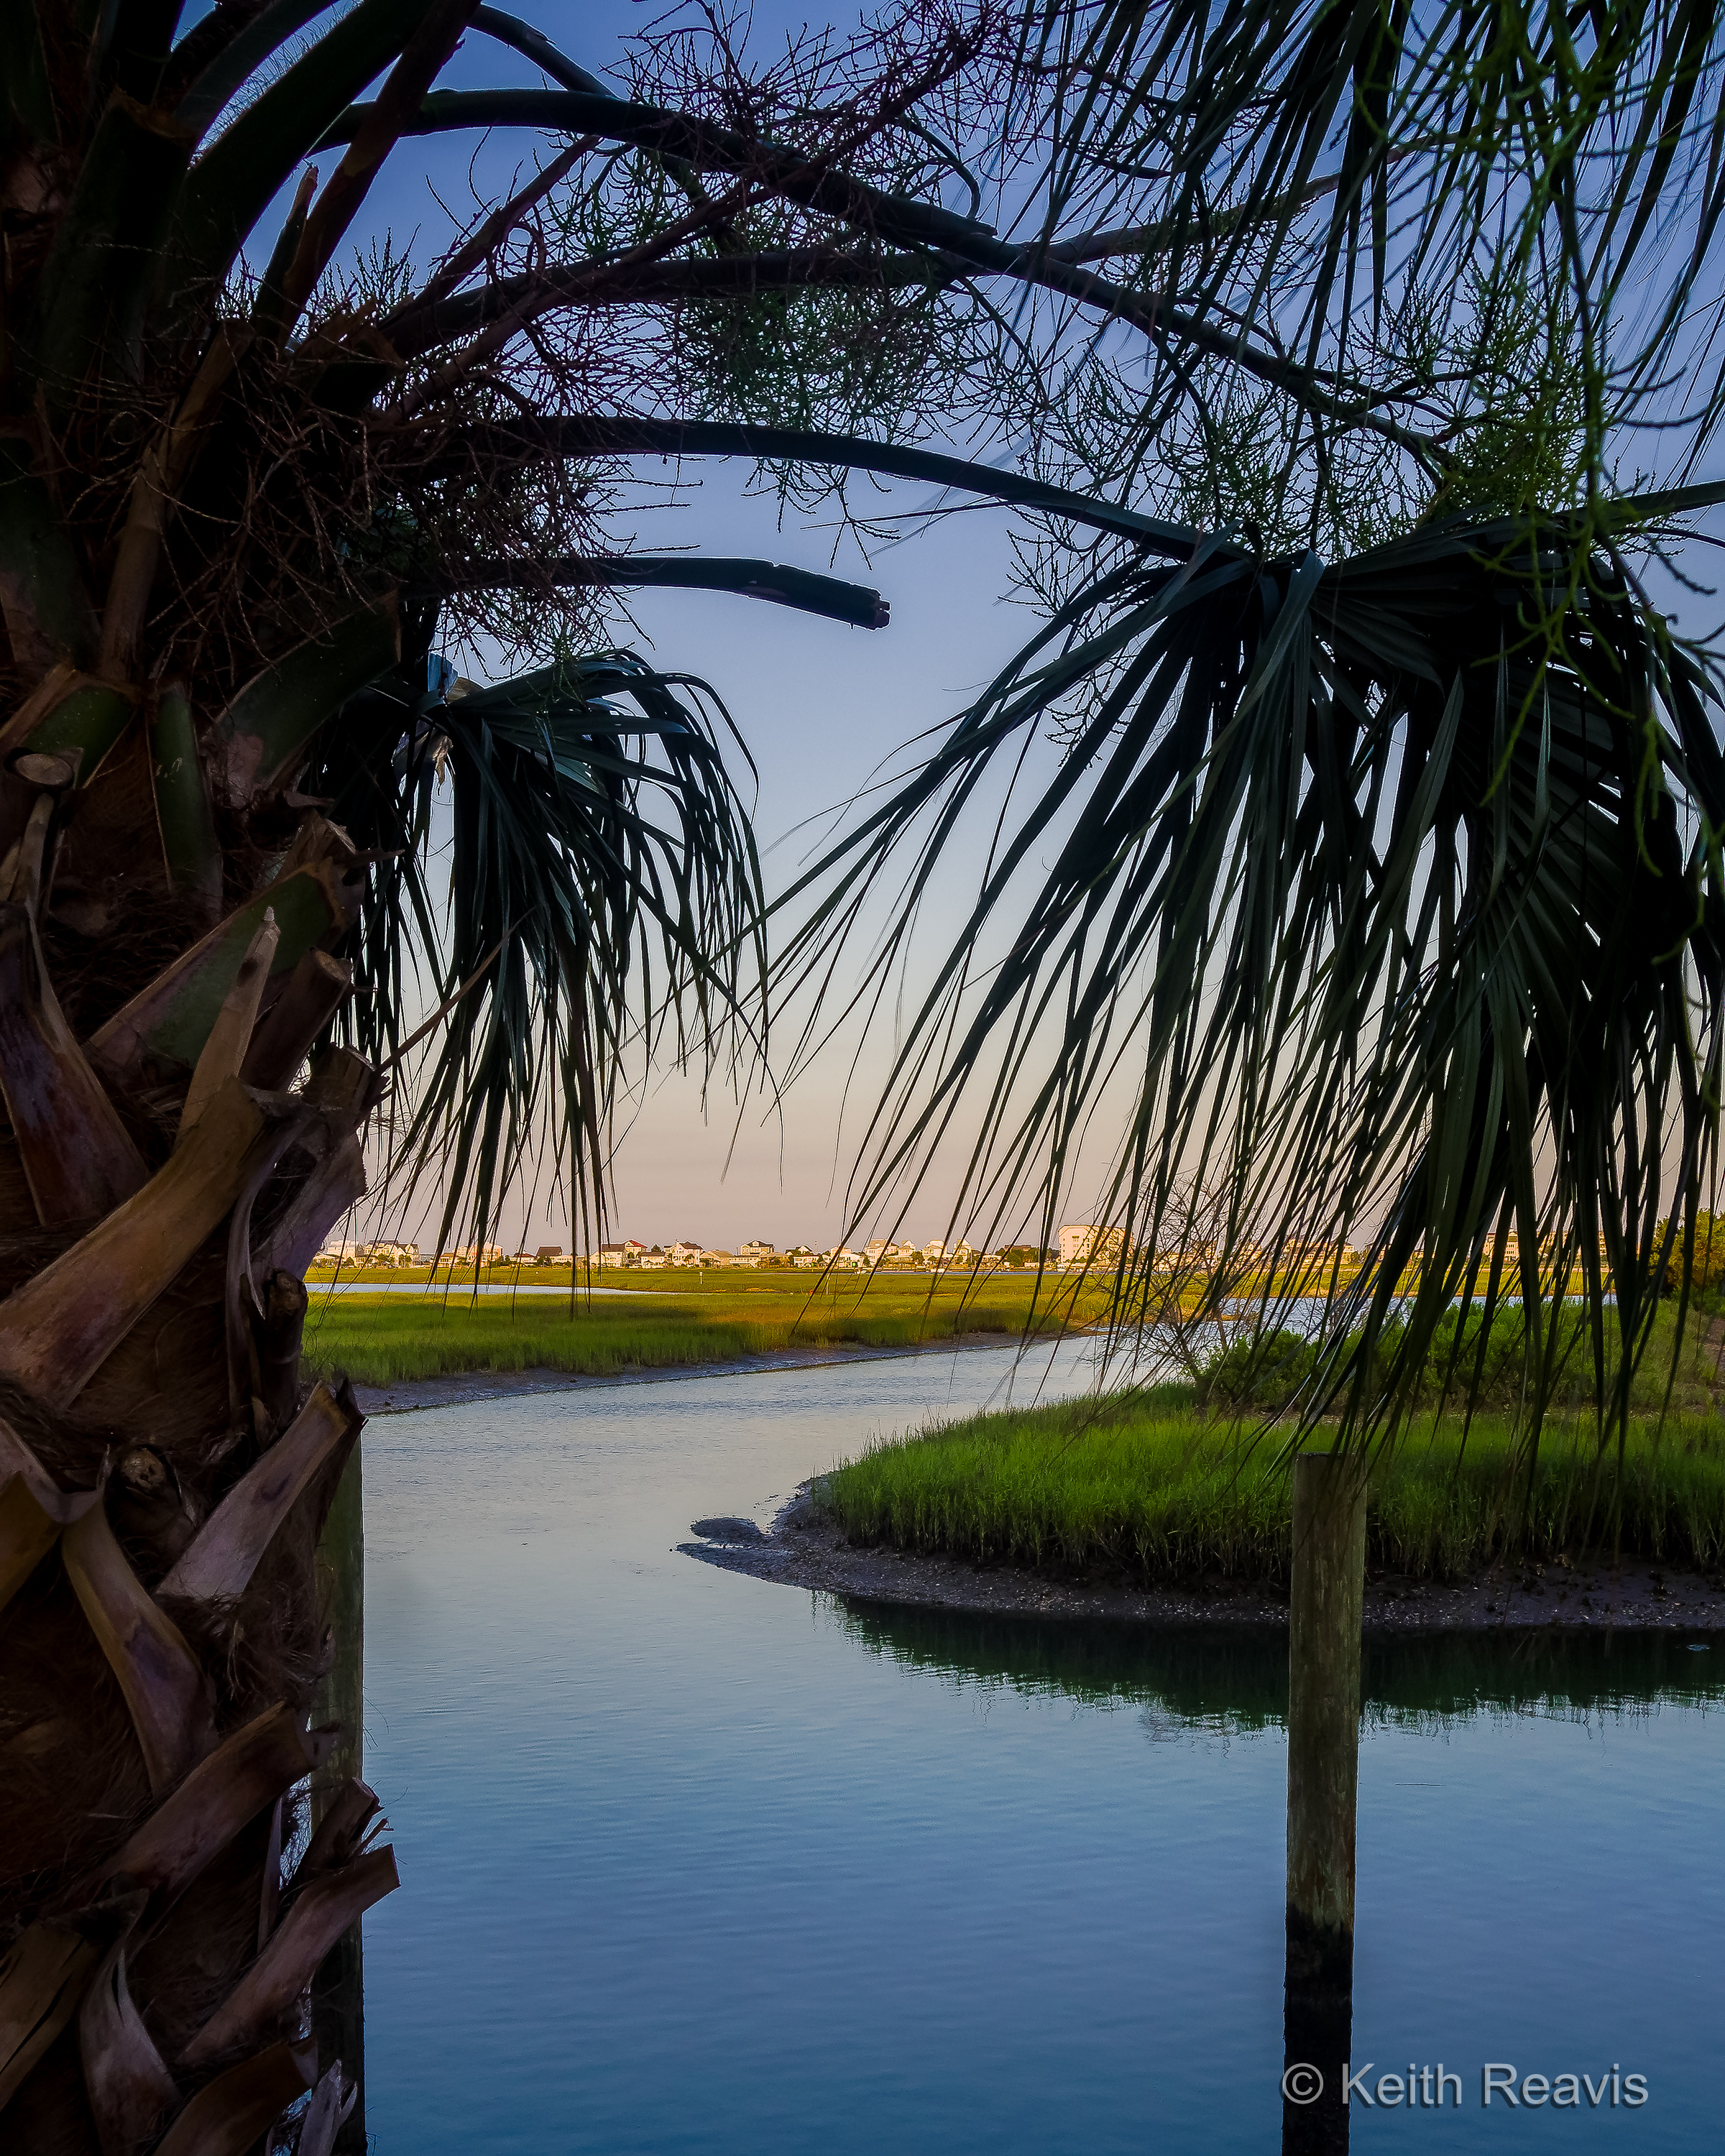 Evening Arrives - Murrells Inlet